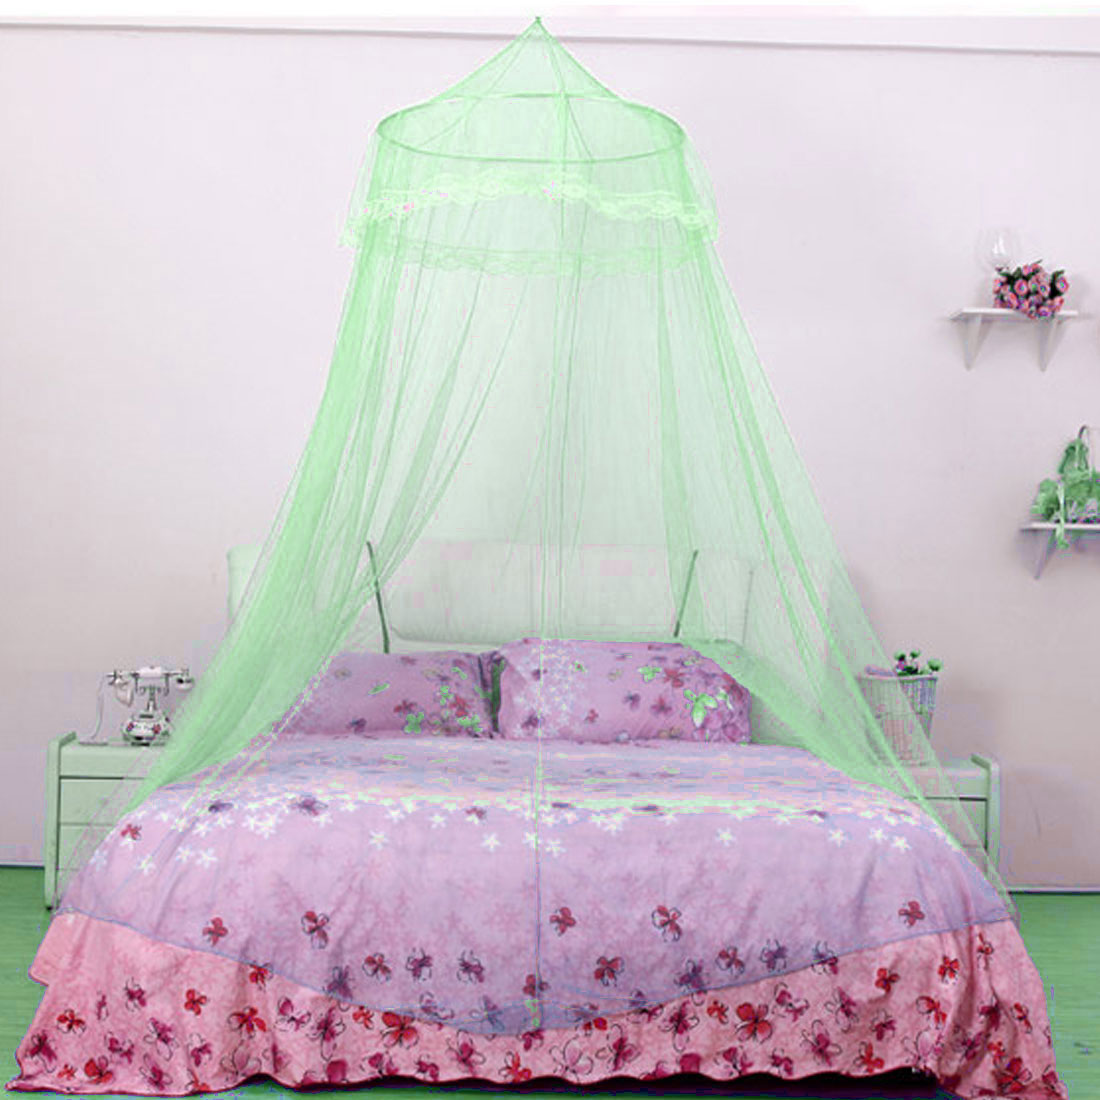 Home Bedroom Round Top Hanging Kit Mesh Bedding Mosquito Net Canopy Green 210 x 60cm